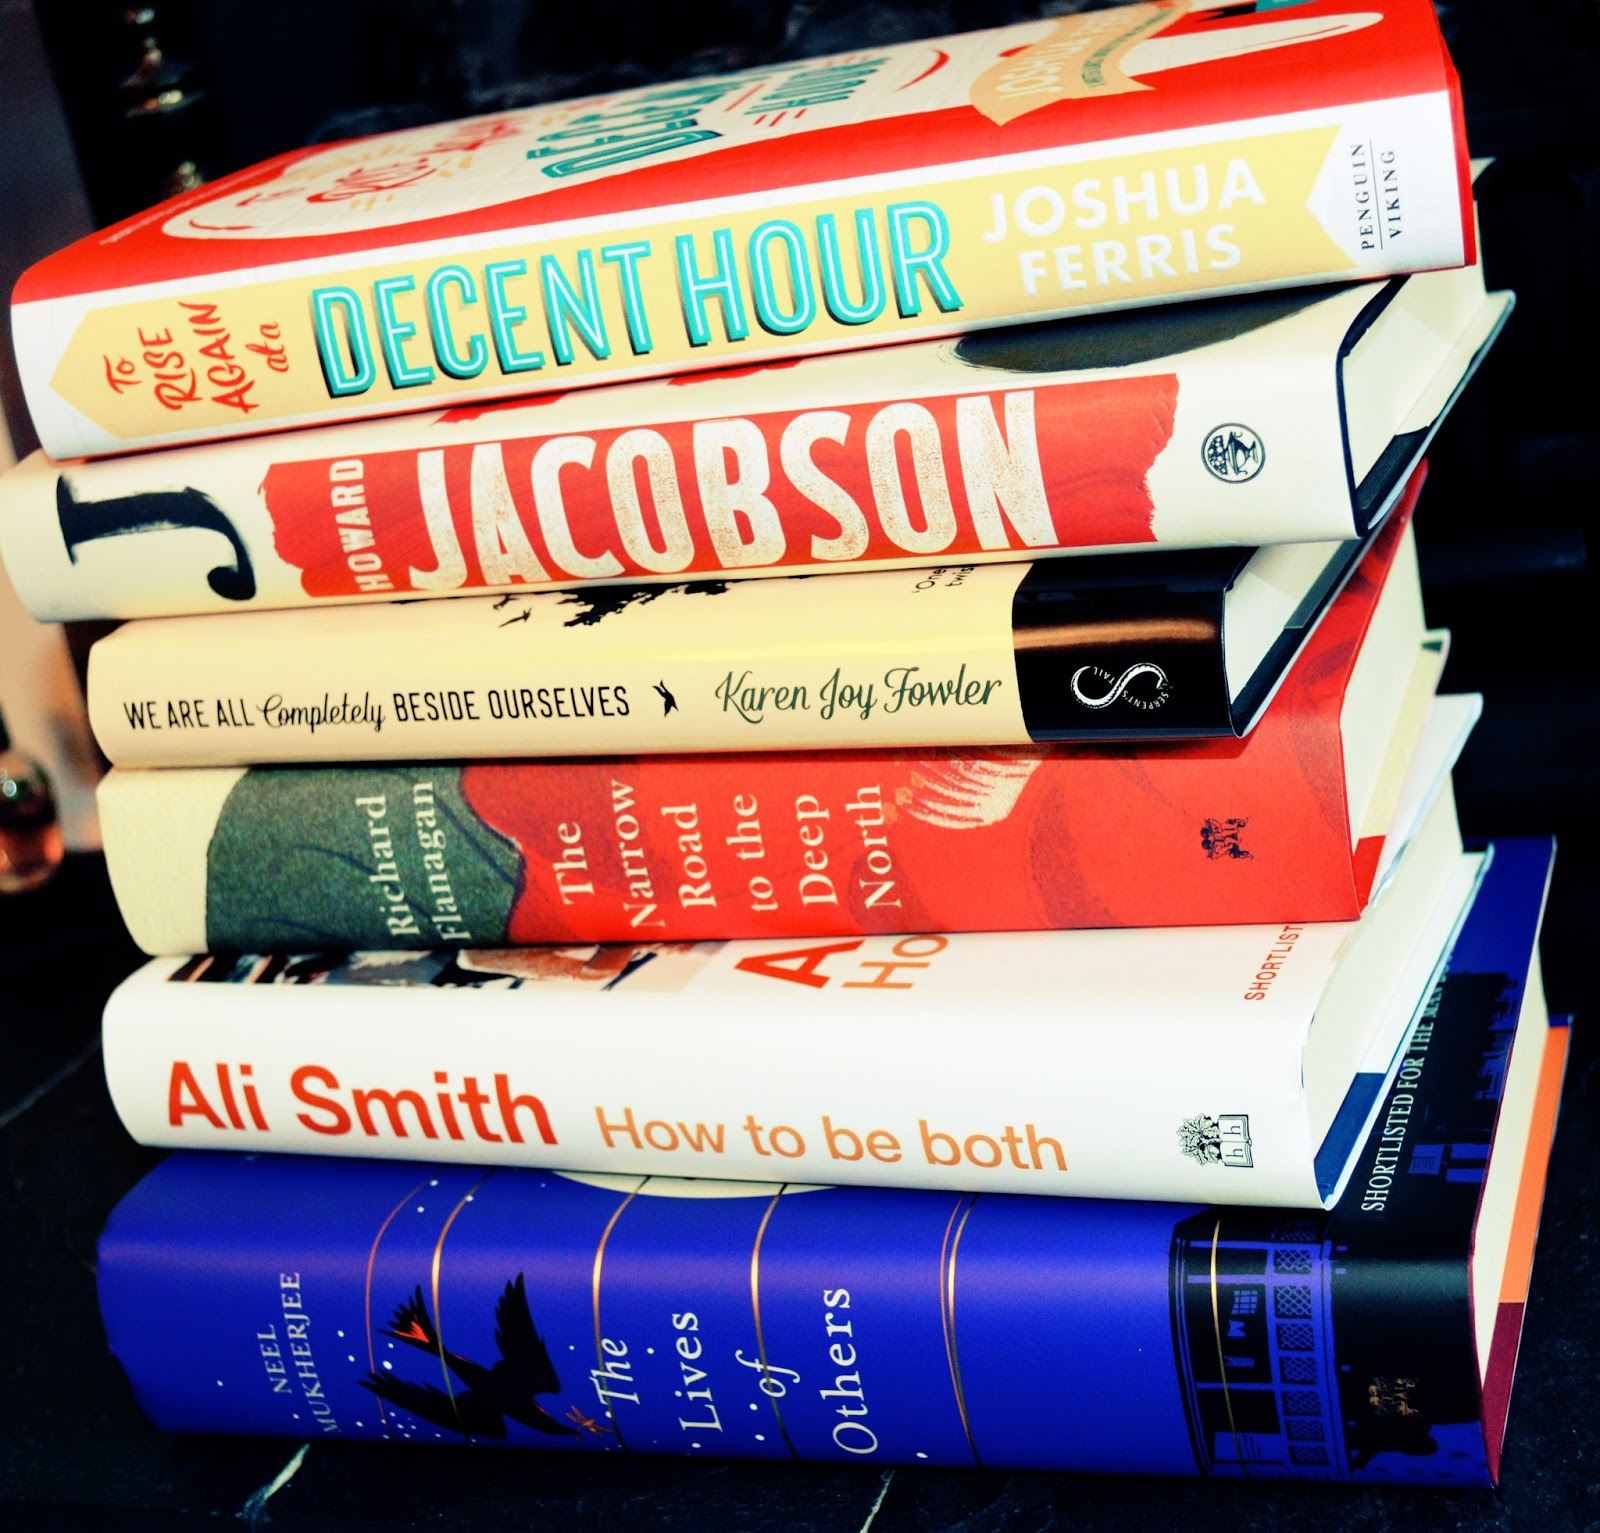 Man Booker shortlist, review, photo, book stack, pile of books